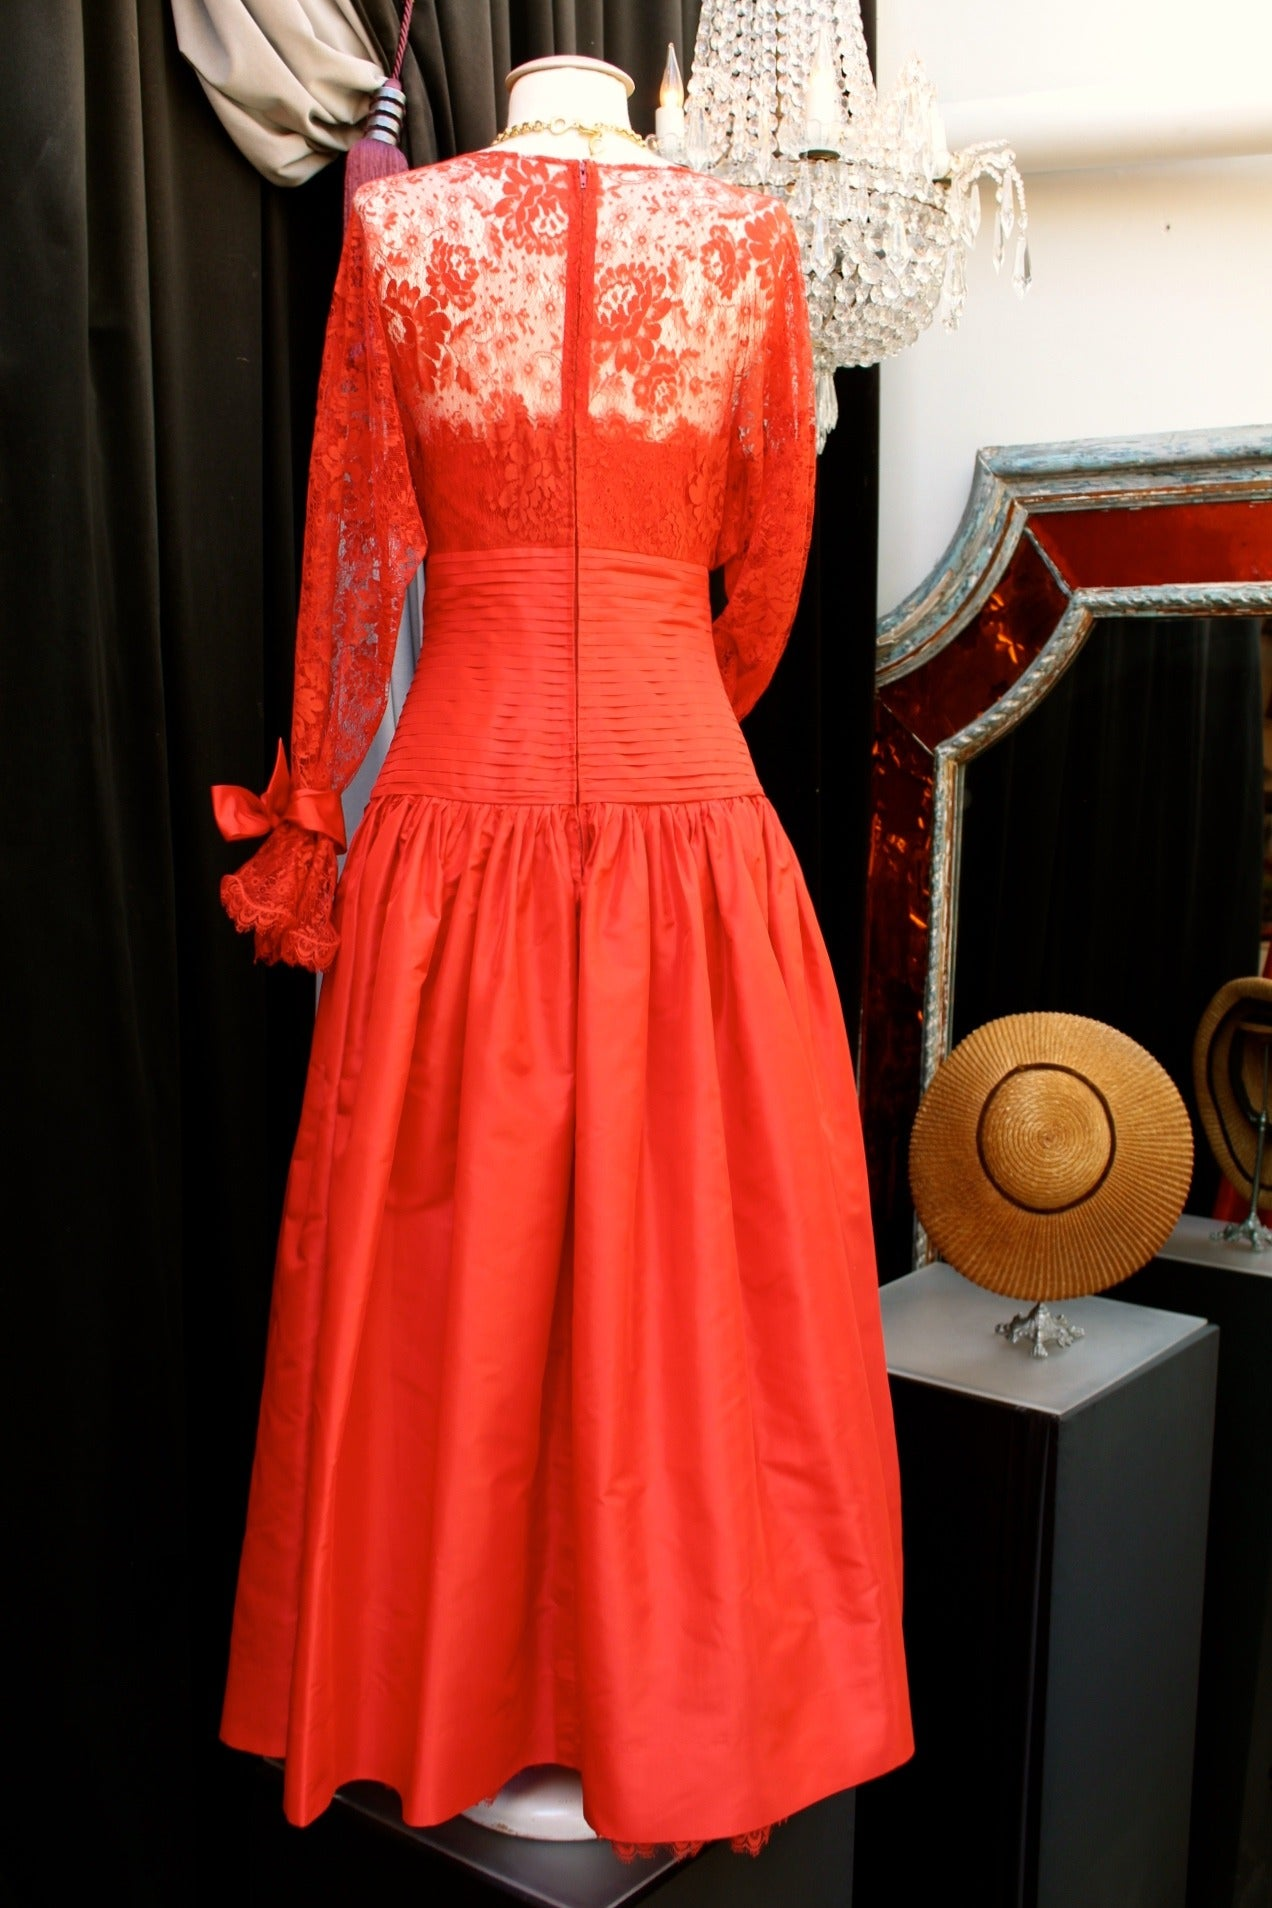 NINA RICCI HAUTE BOUTIQUE (Made in France) Red Taffeta and Lace Evening Dress consisting of a long crinoline skirt with a waistband made of pleated bands of traffetas and lace sleeves tight at the wrists by red taffeta ribbons . Closed in the back